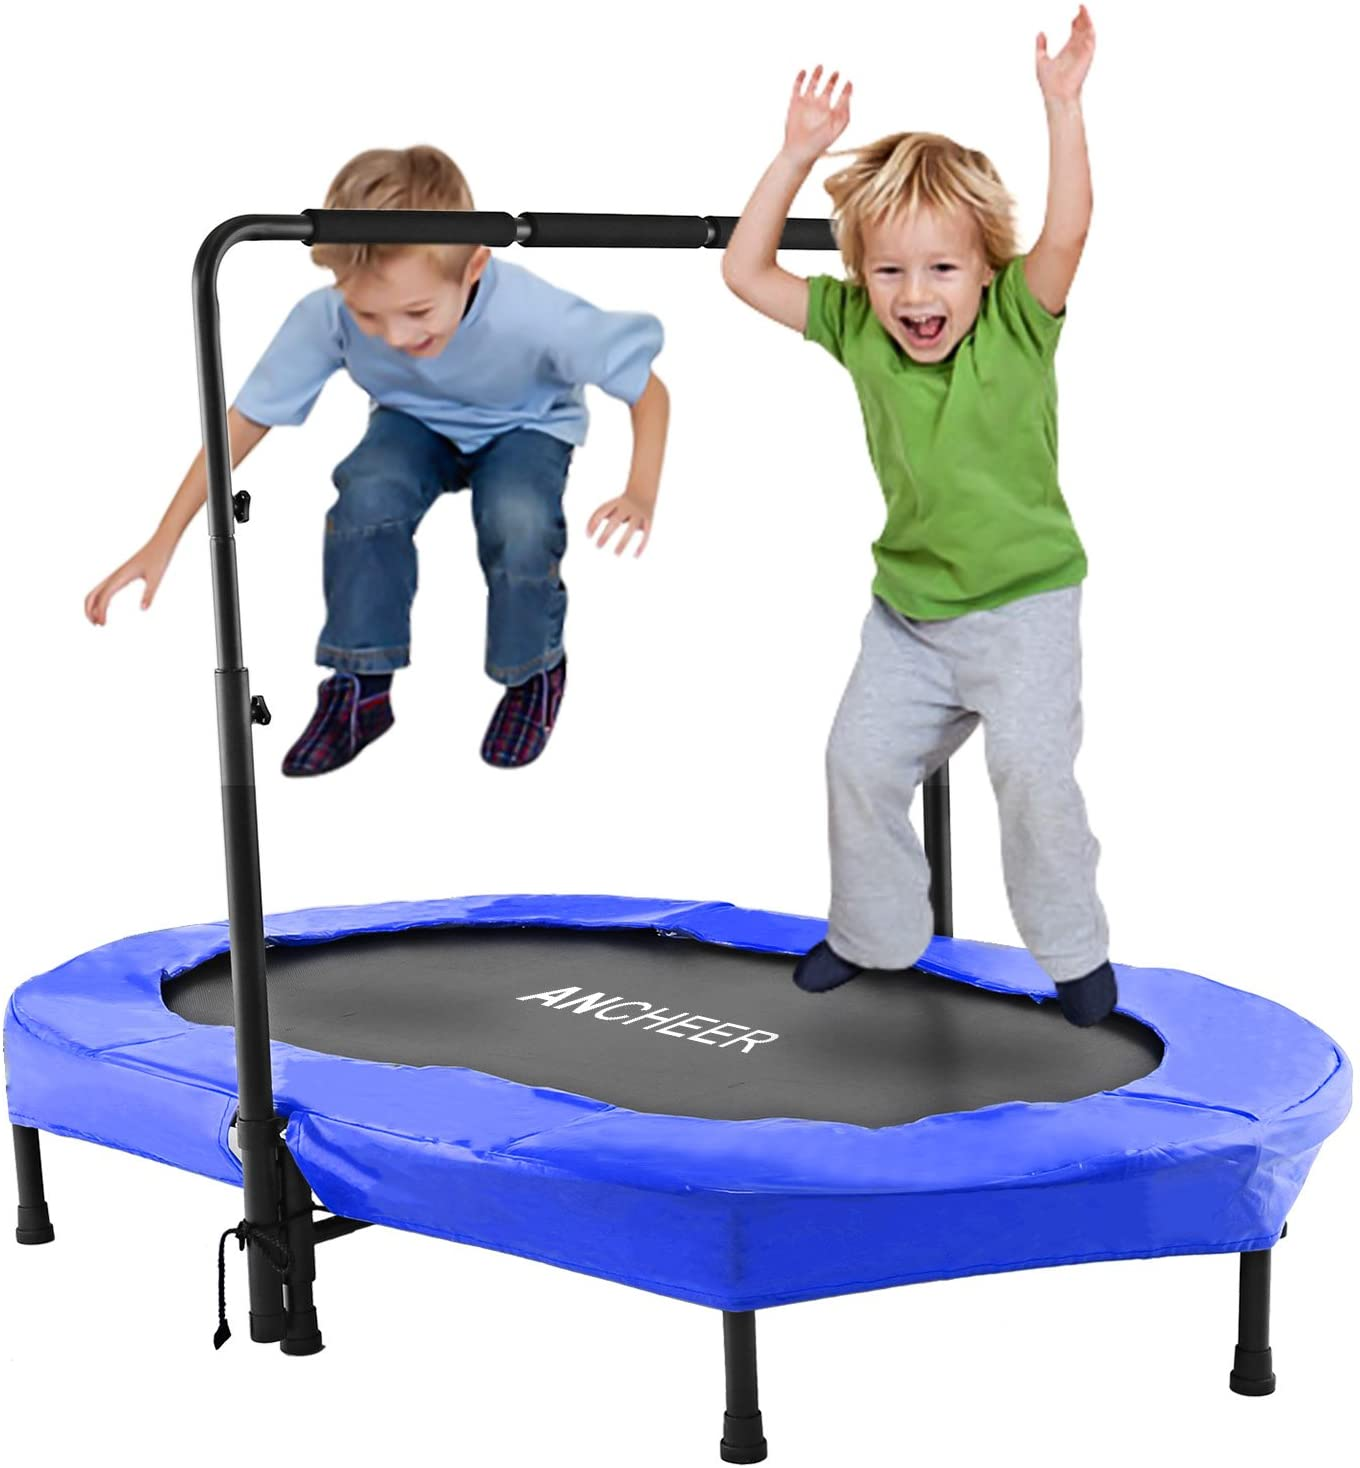 oval trampolines